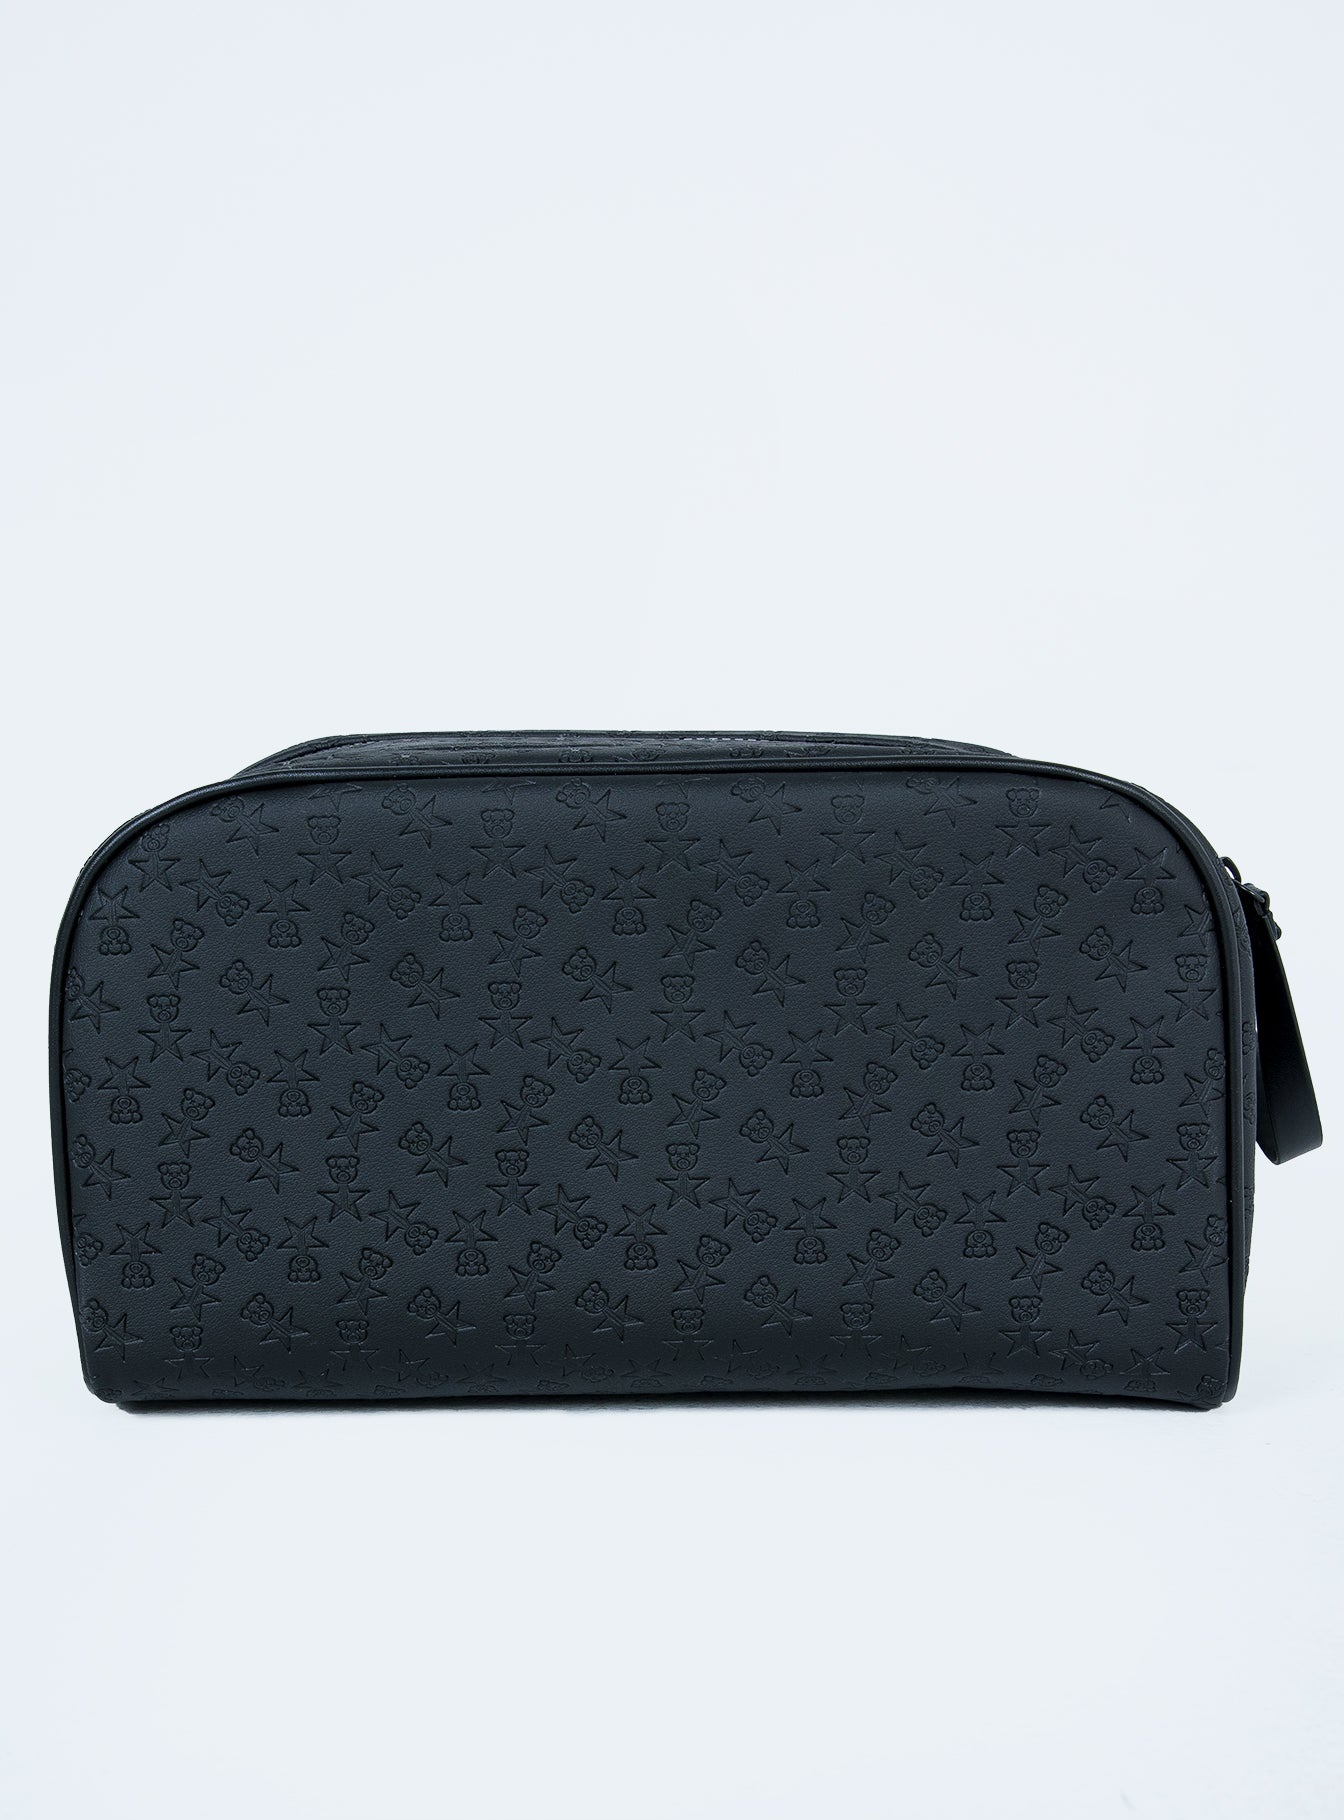 Jeffree Star Cosmetics X Shane Dawson Black Double Zip Makeup Bag